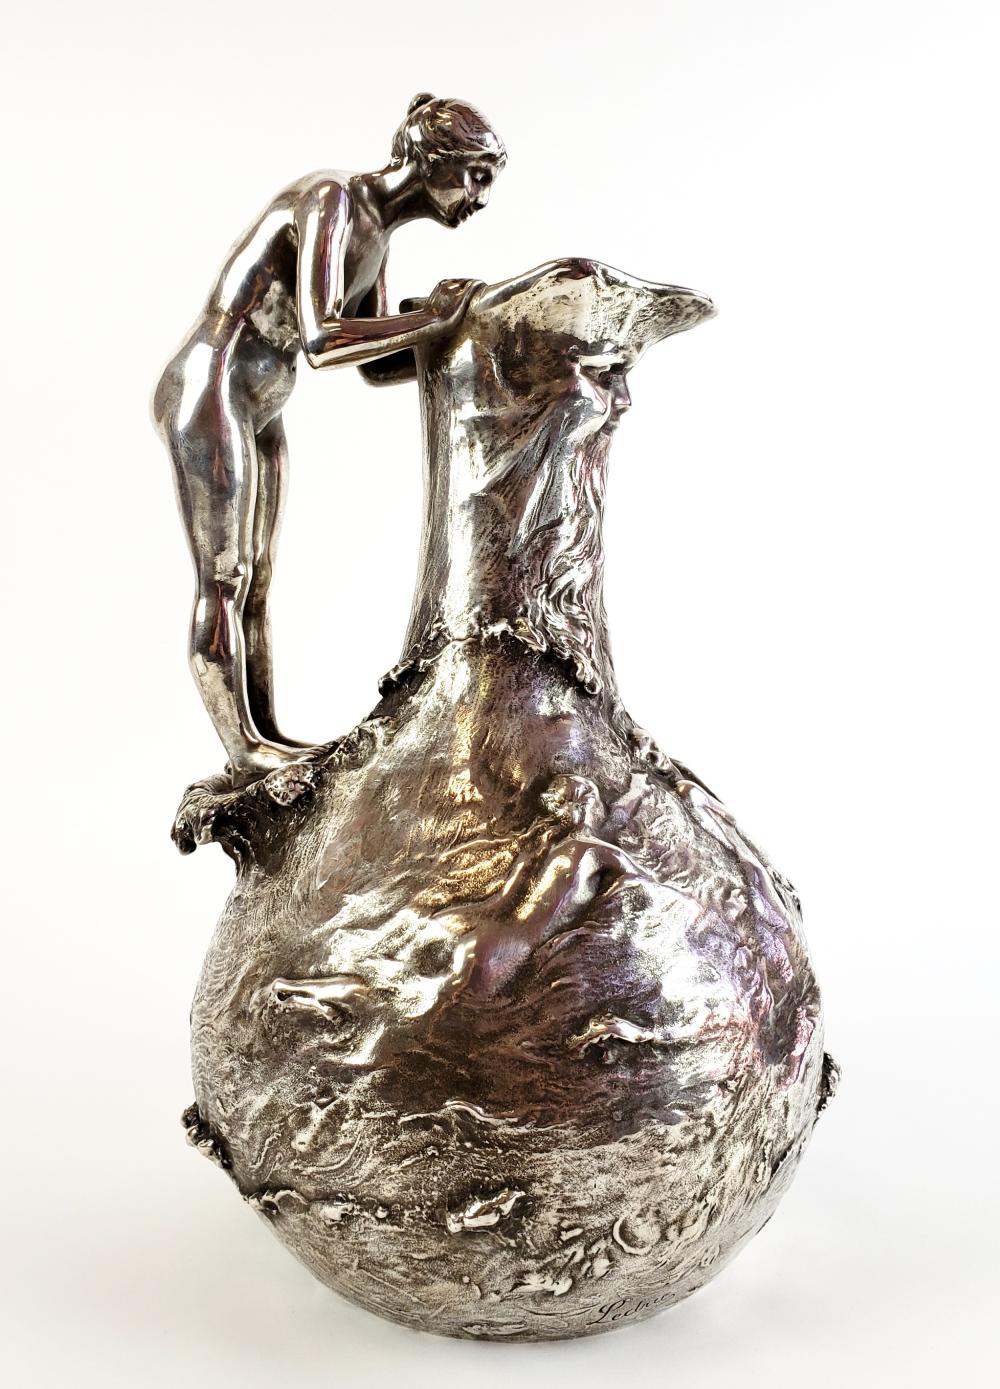 Large Ledru Signed 19th C. Silverpted Figural Jardeniere w/Foundry Mark